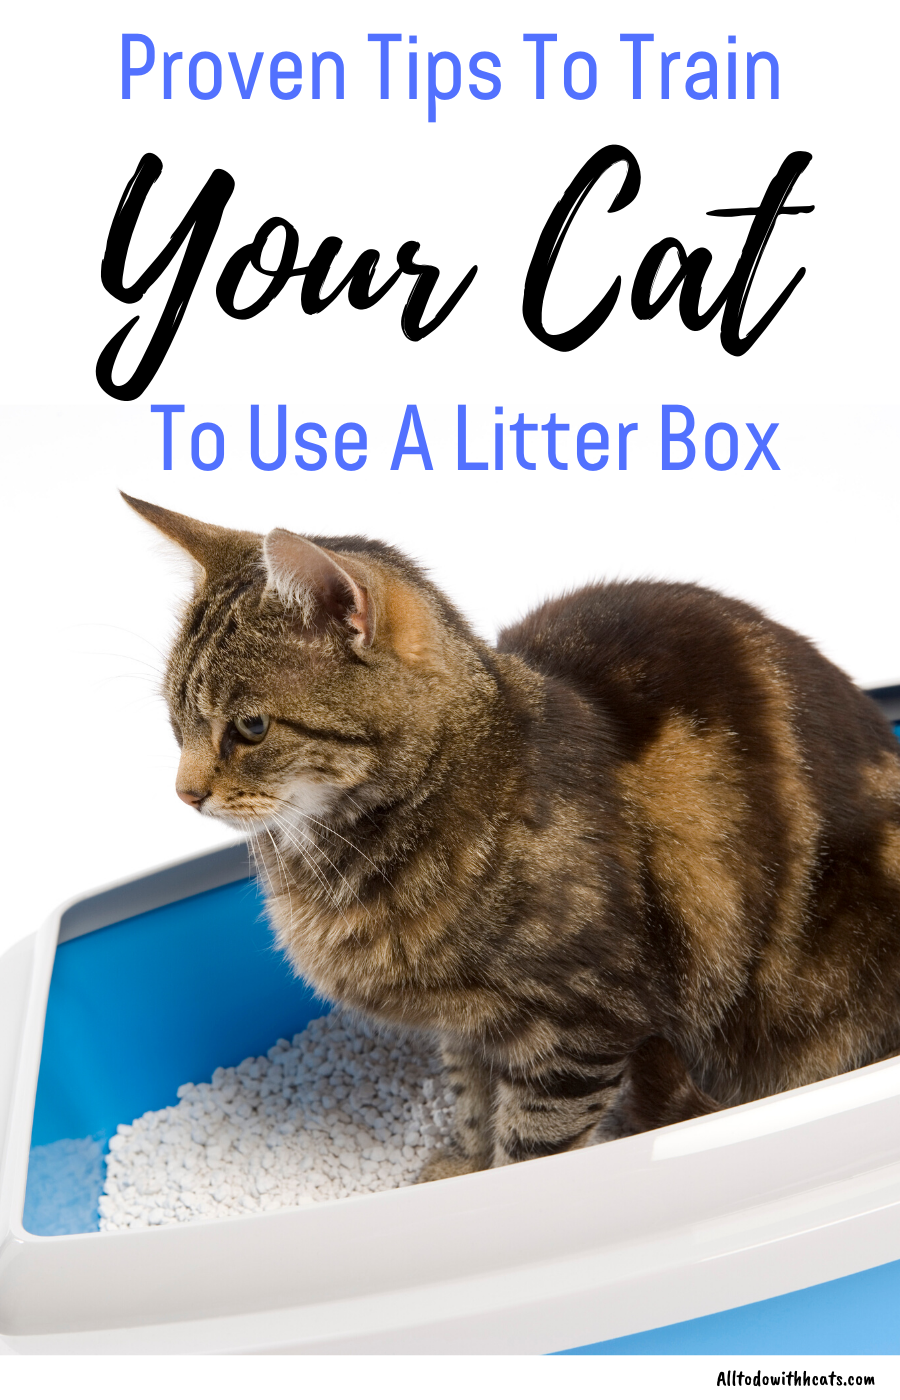 How To Train Your Cat To Use A Litter Box Easily All To Do With Cats Cat Training Litter Box Natural Cat Litter Clay Cat Litter